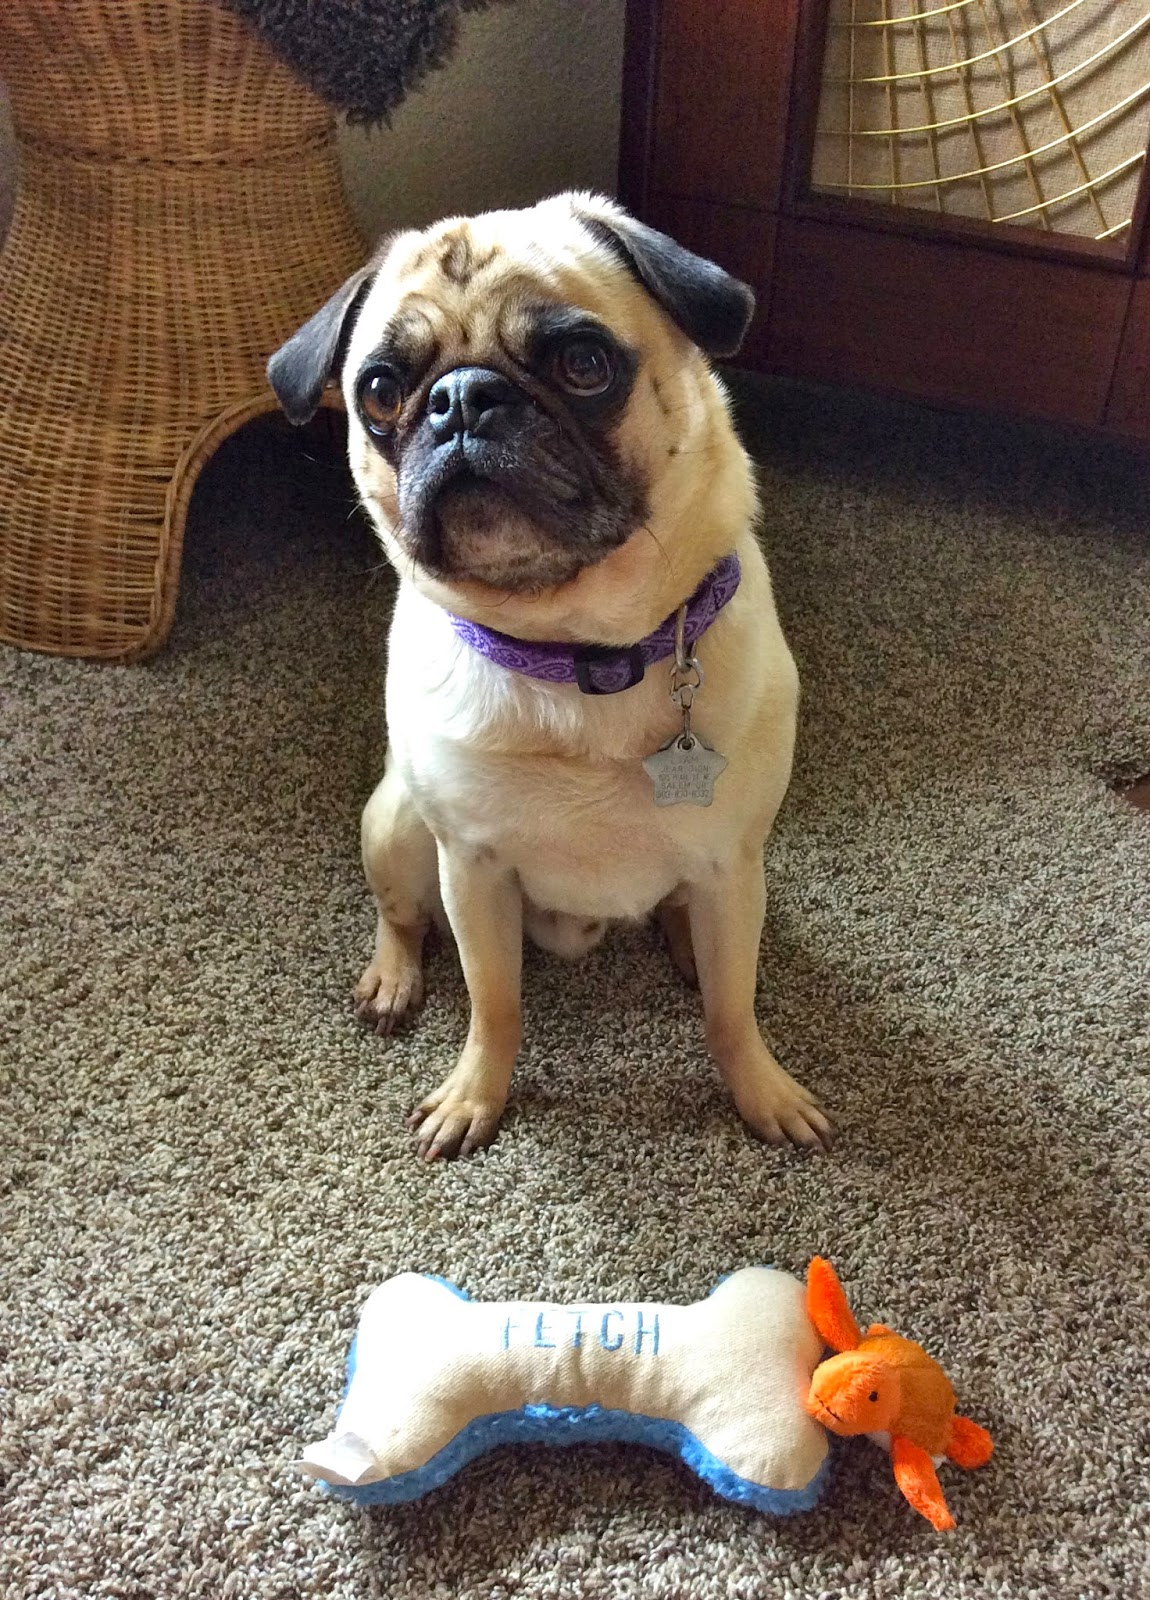 Liam the pug with his two dog toys